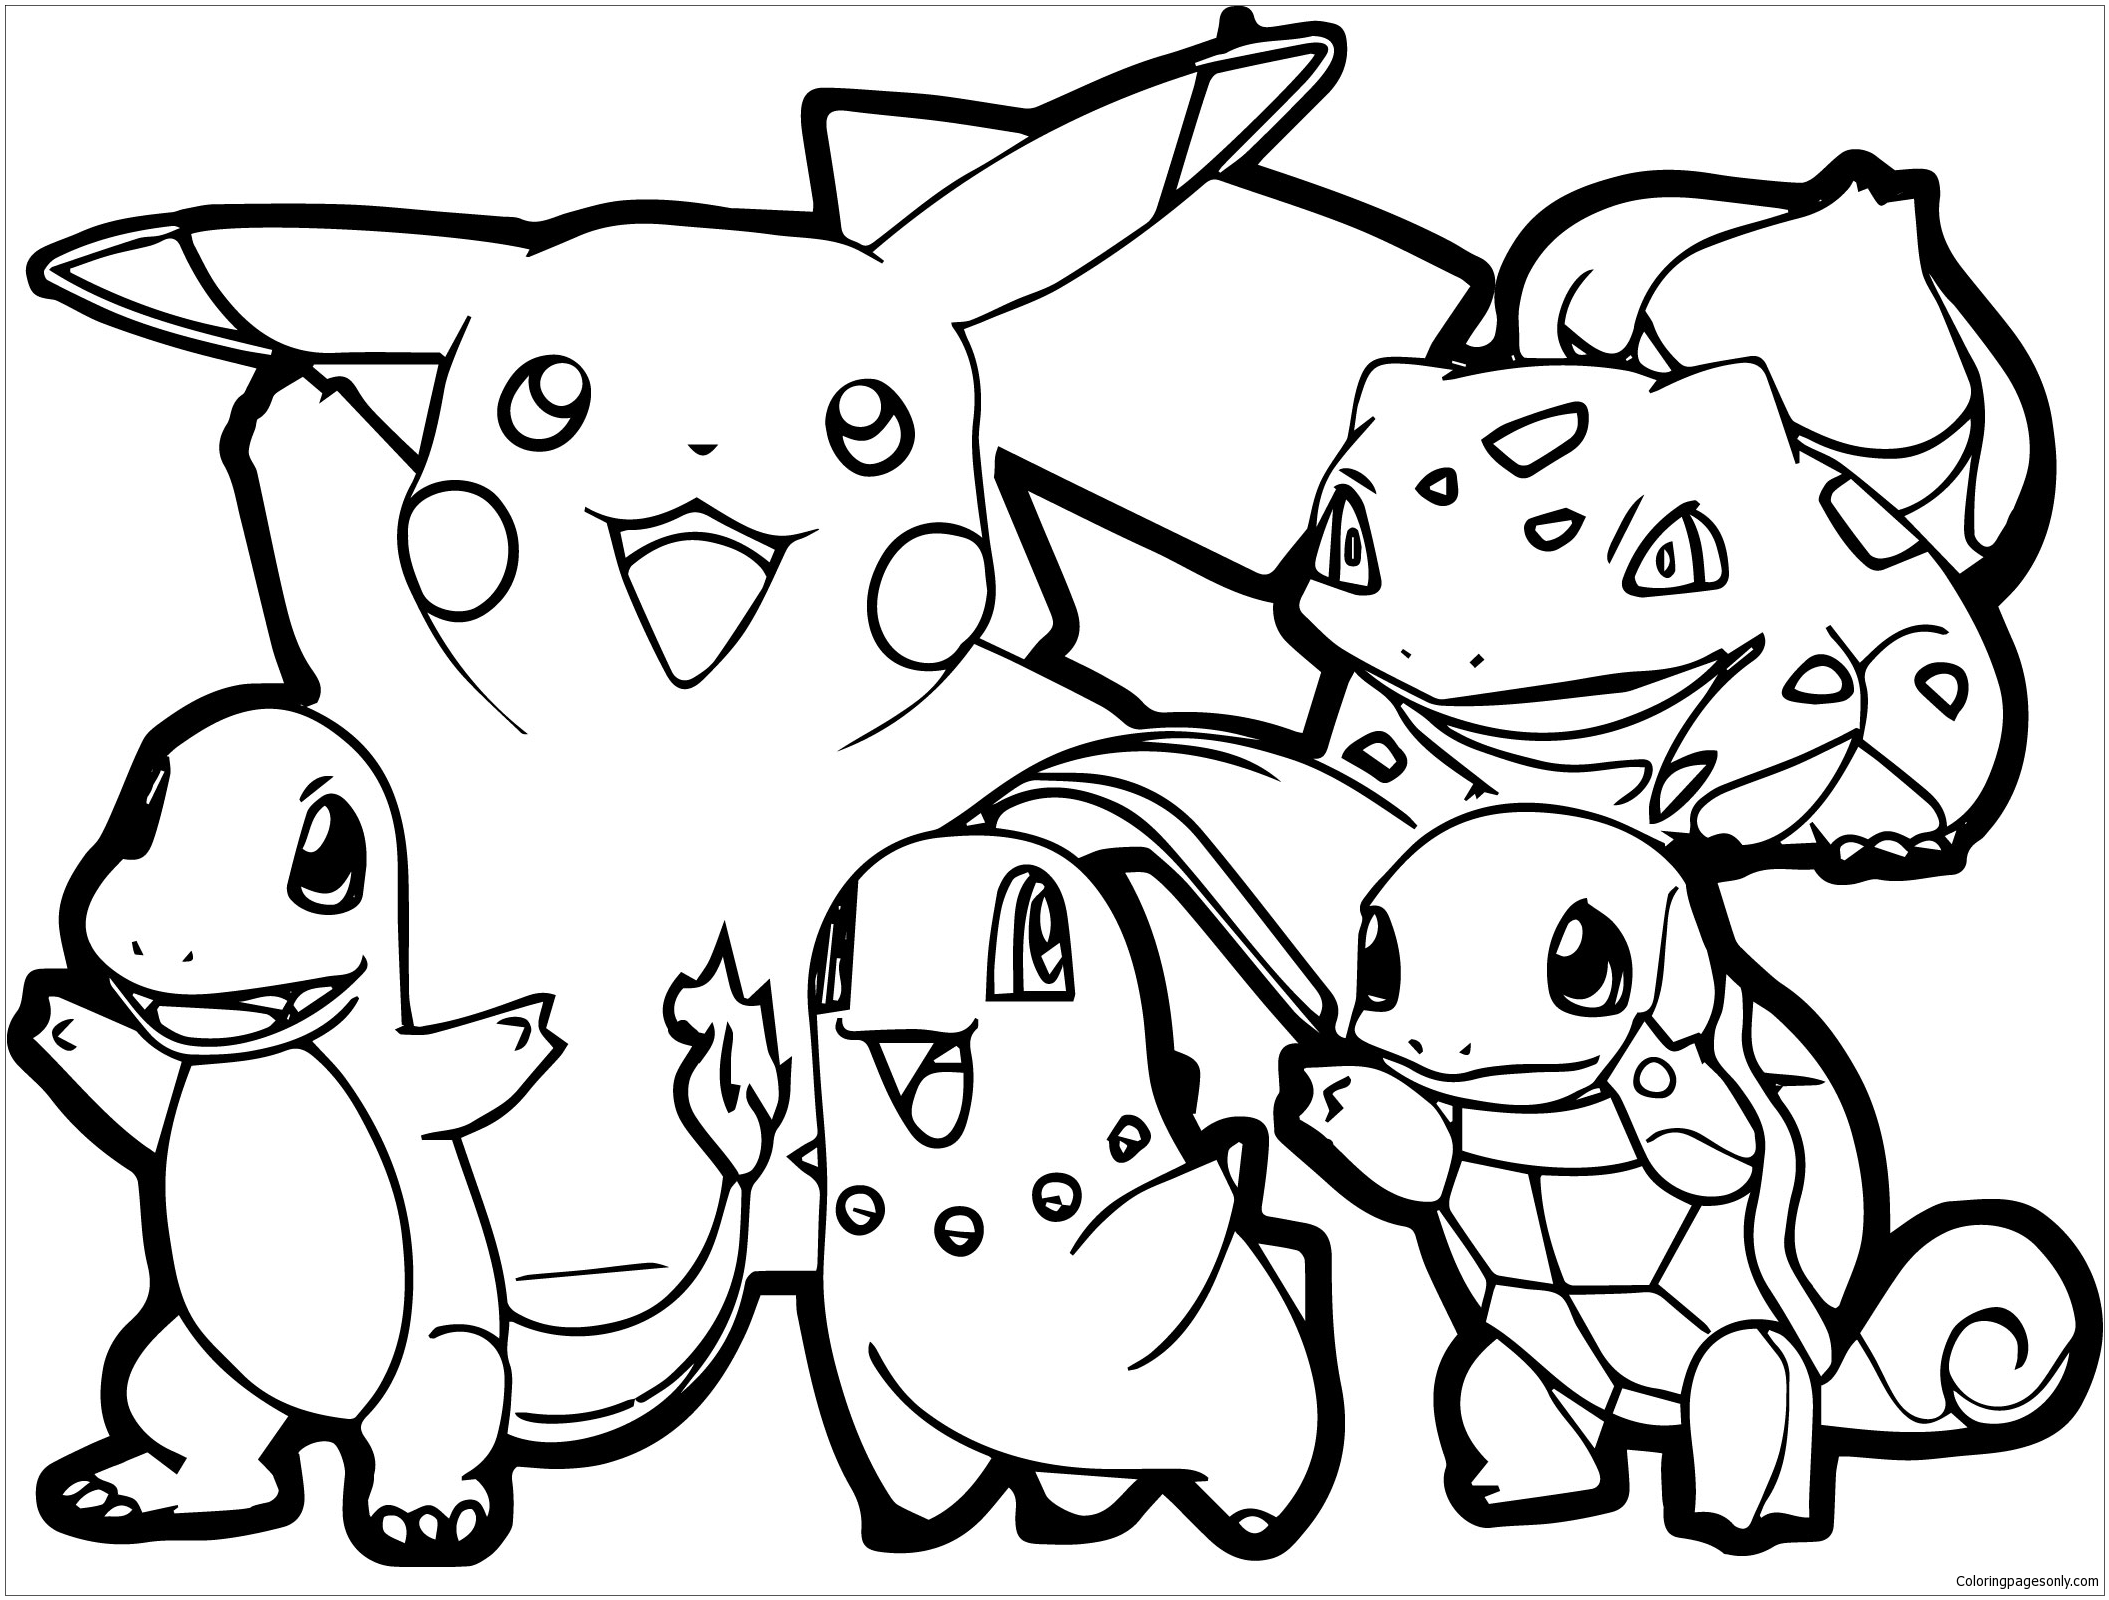 free coloring pokemon pages pokemon coloring pages join your favorite pokemon on an pages pokemon free coloring